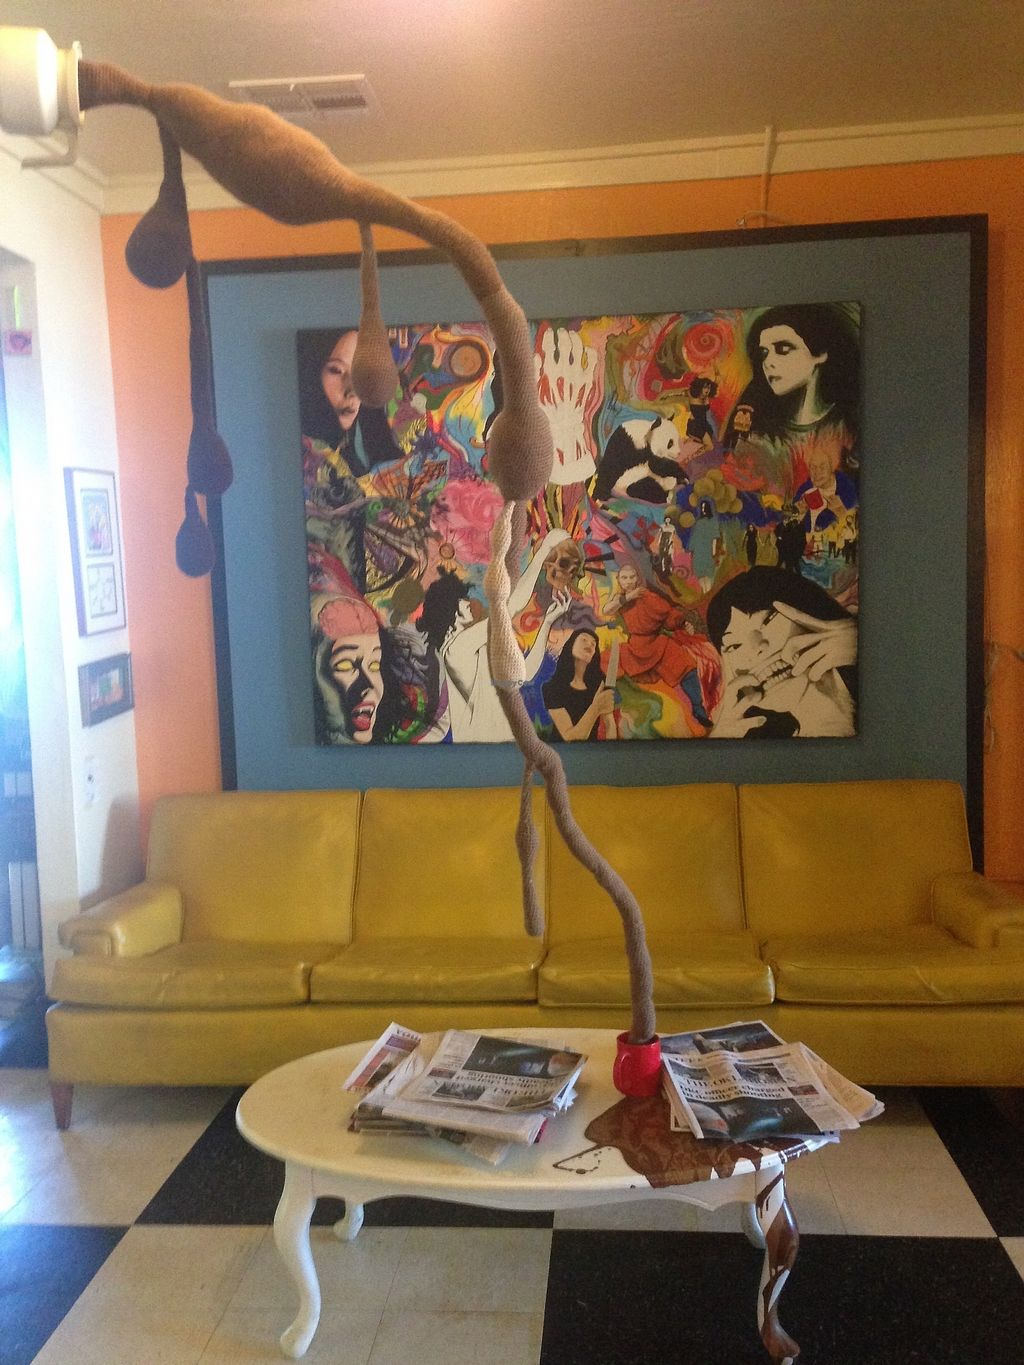 """Photo of Red Cup Coffee House  by <a href=""""/members/profile/MollyJD17"""">MollyJD17</a> <br/>One of the many eclectic seating options <br/> December 29, 2017  - <a href='/contact/abuse/image/11038/340294'>Report</a>"""